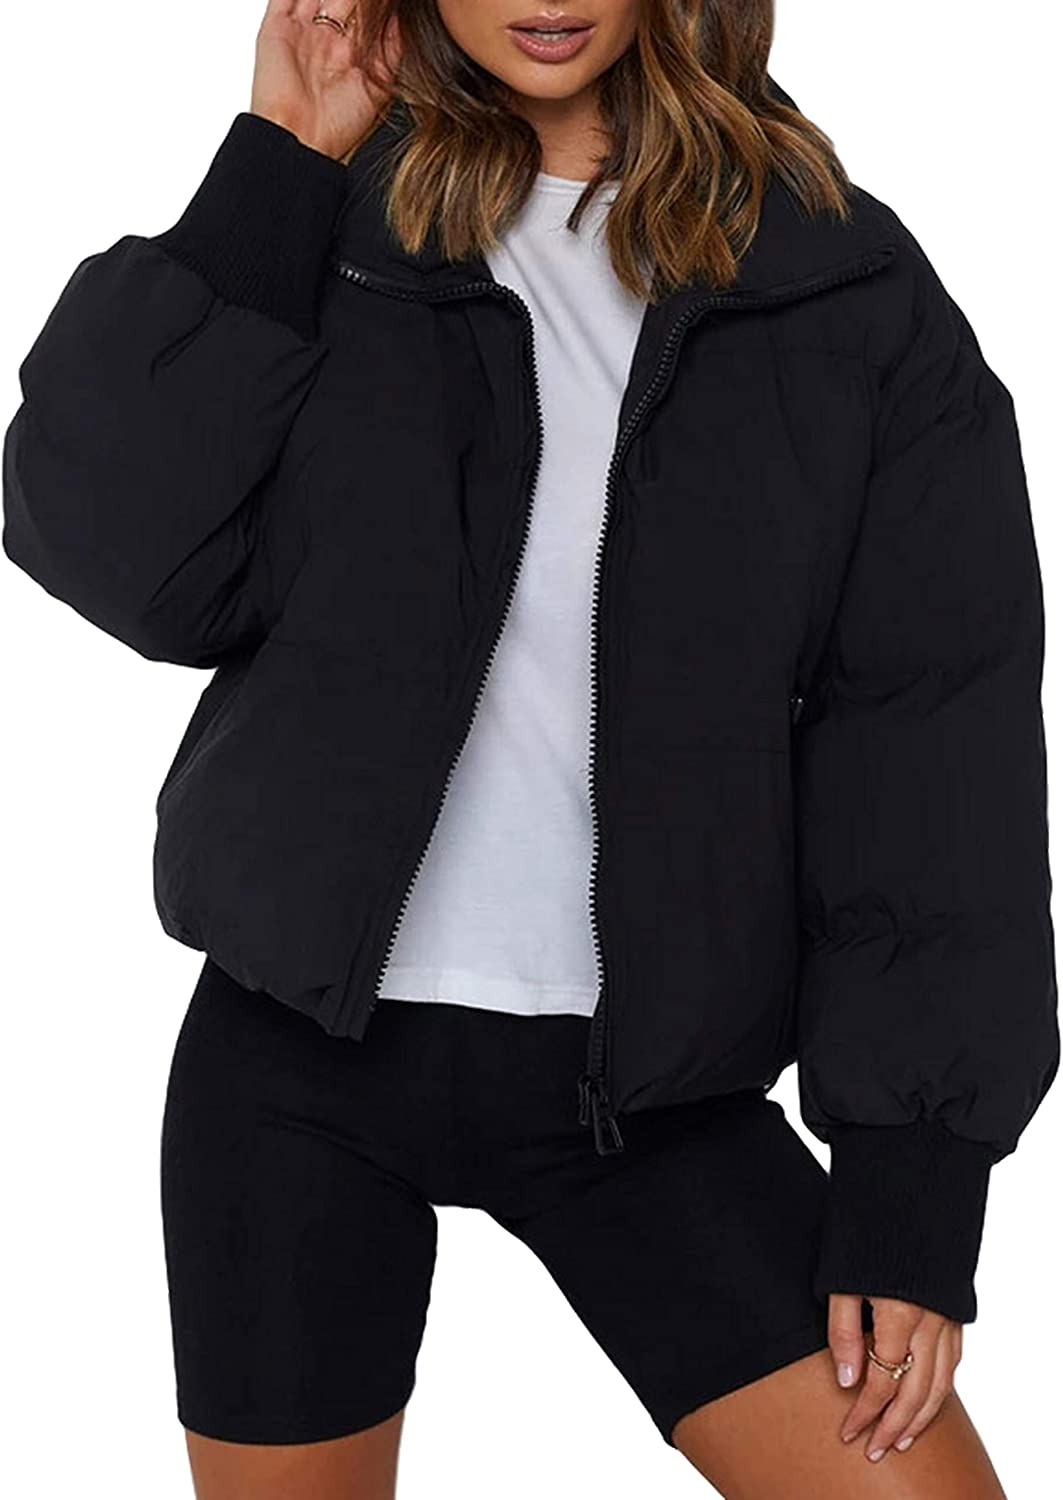 Uaneo Womens Casual Padded Full Zip Stand Collar Long Sleeve Puffer Jackets